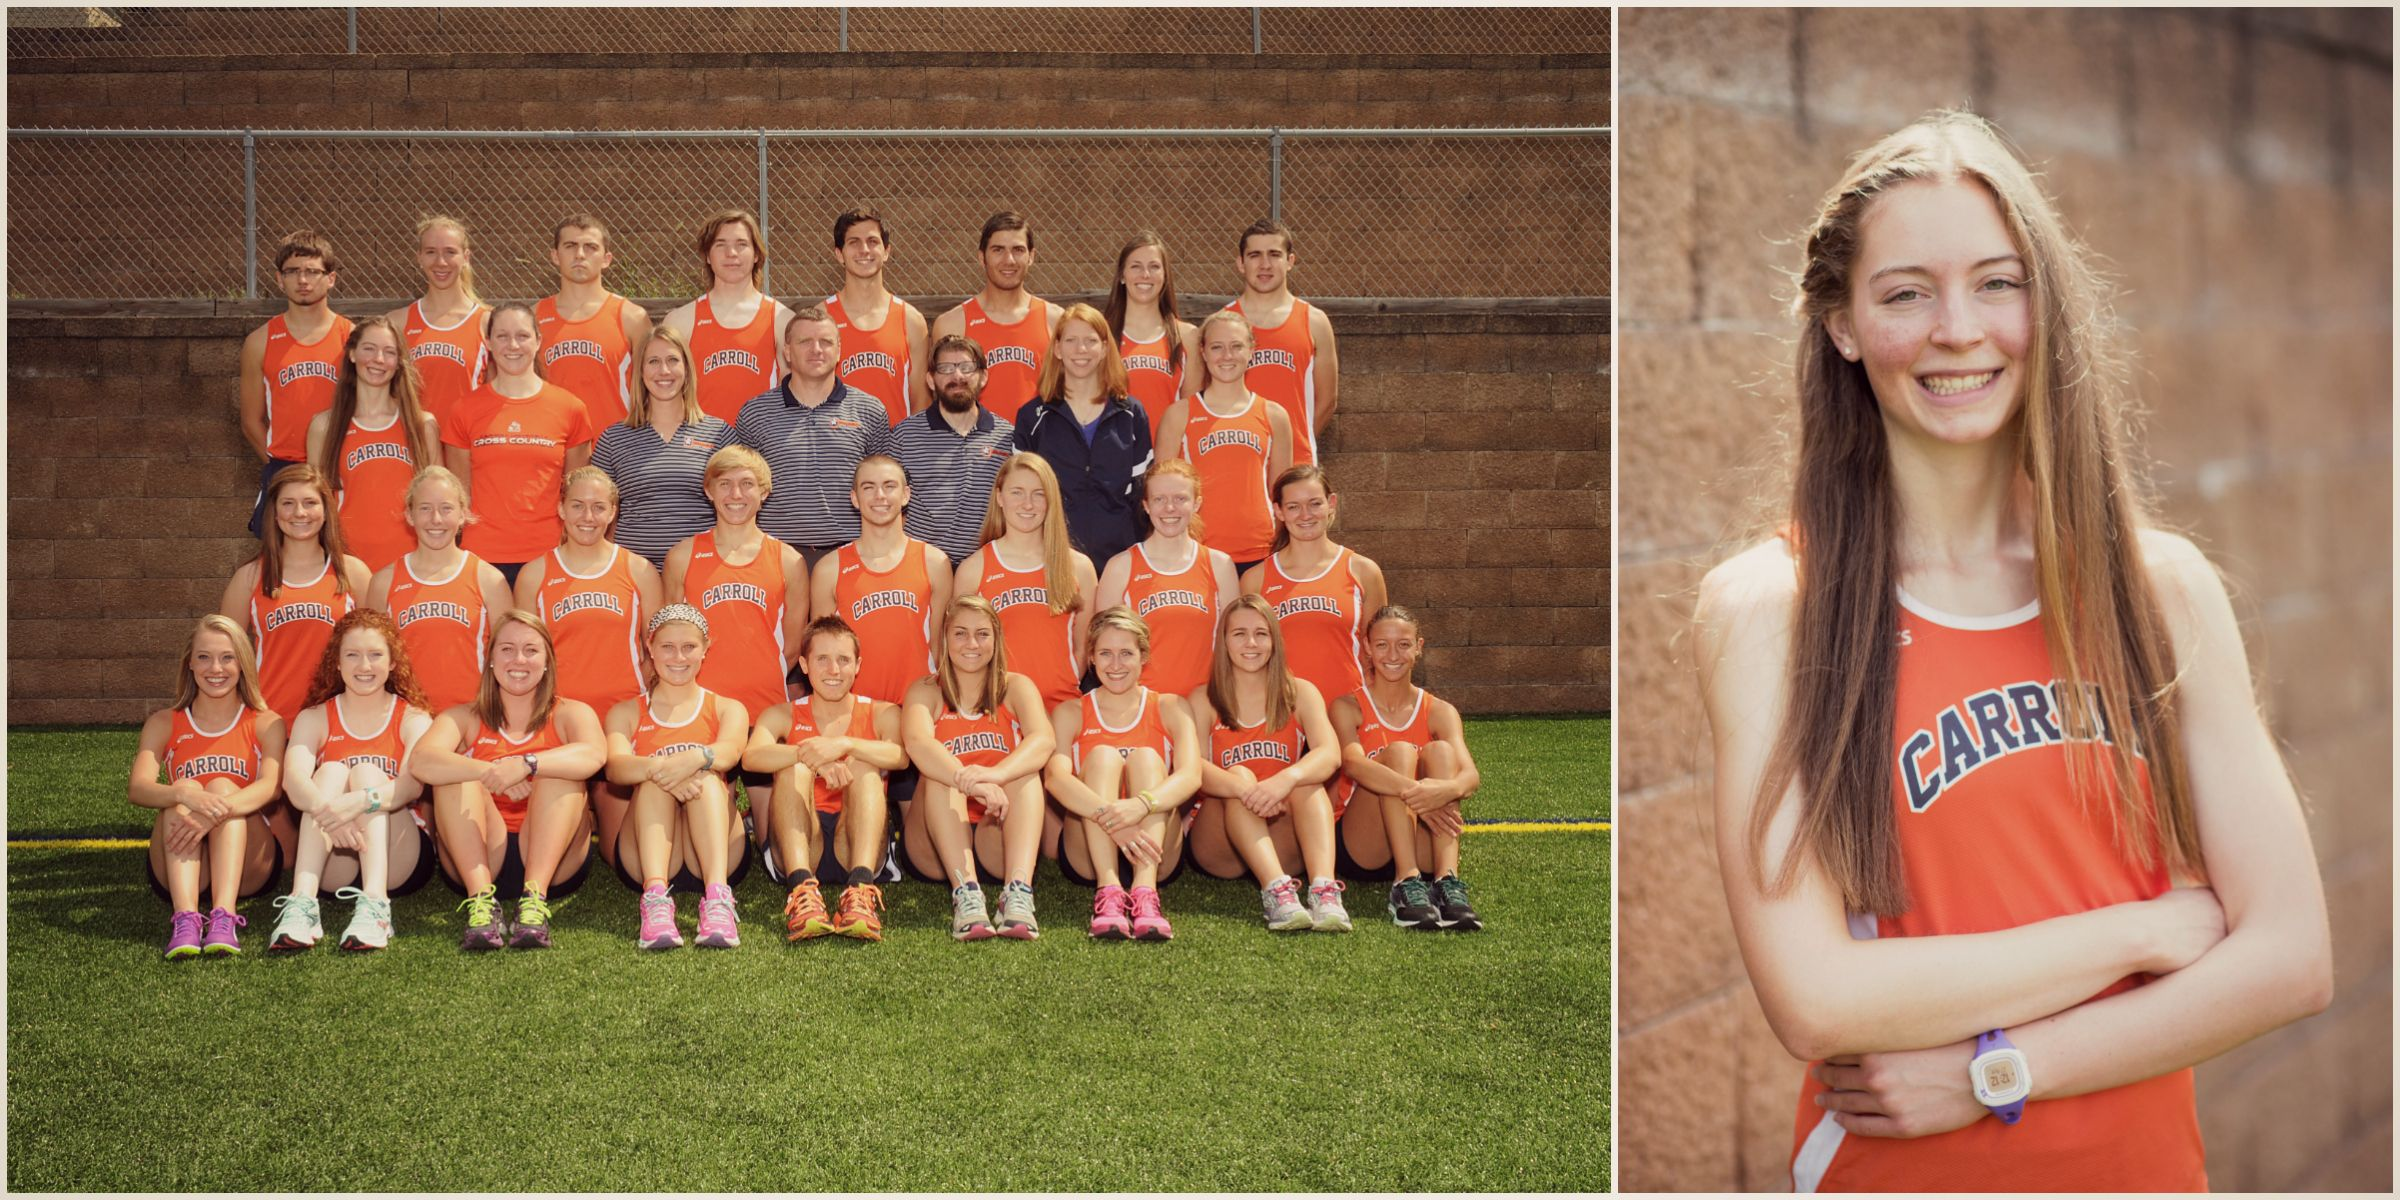 Carroll Xc Programs Named All Academic Teams By Ustfccca Carroll University Cross Country Coaching Student Athlete